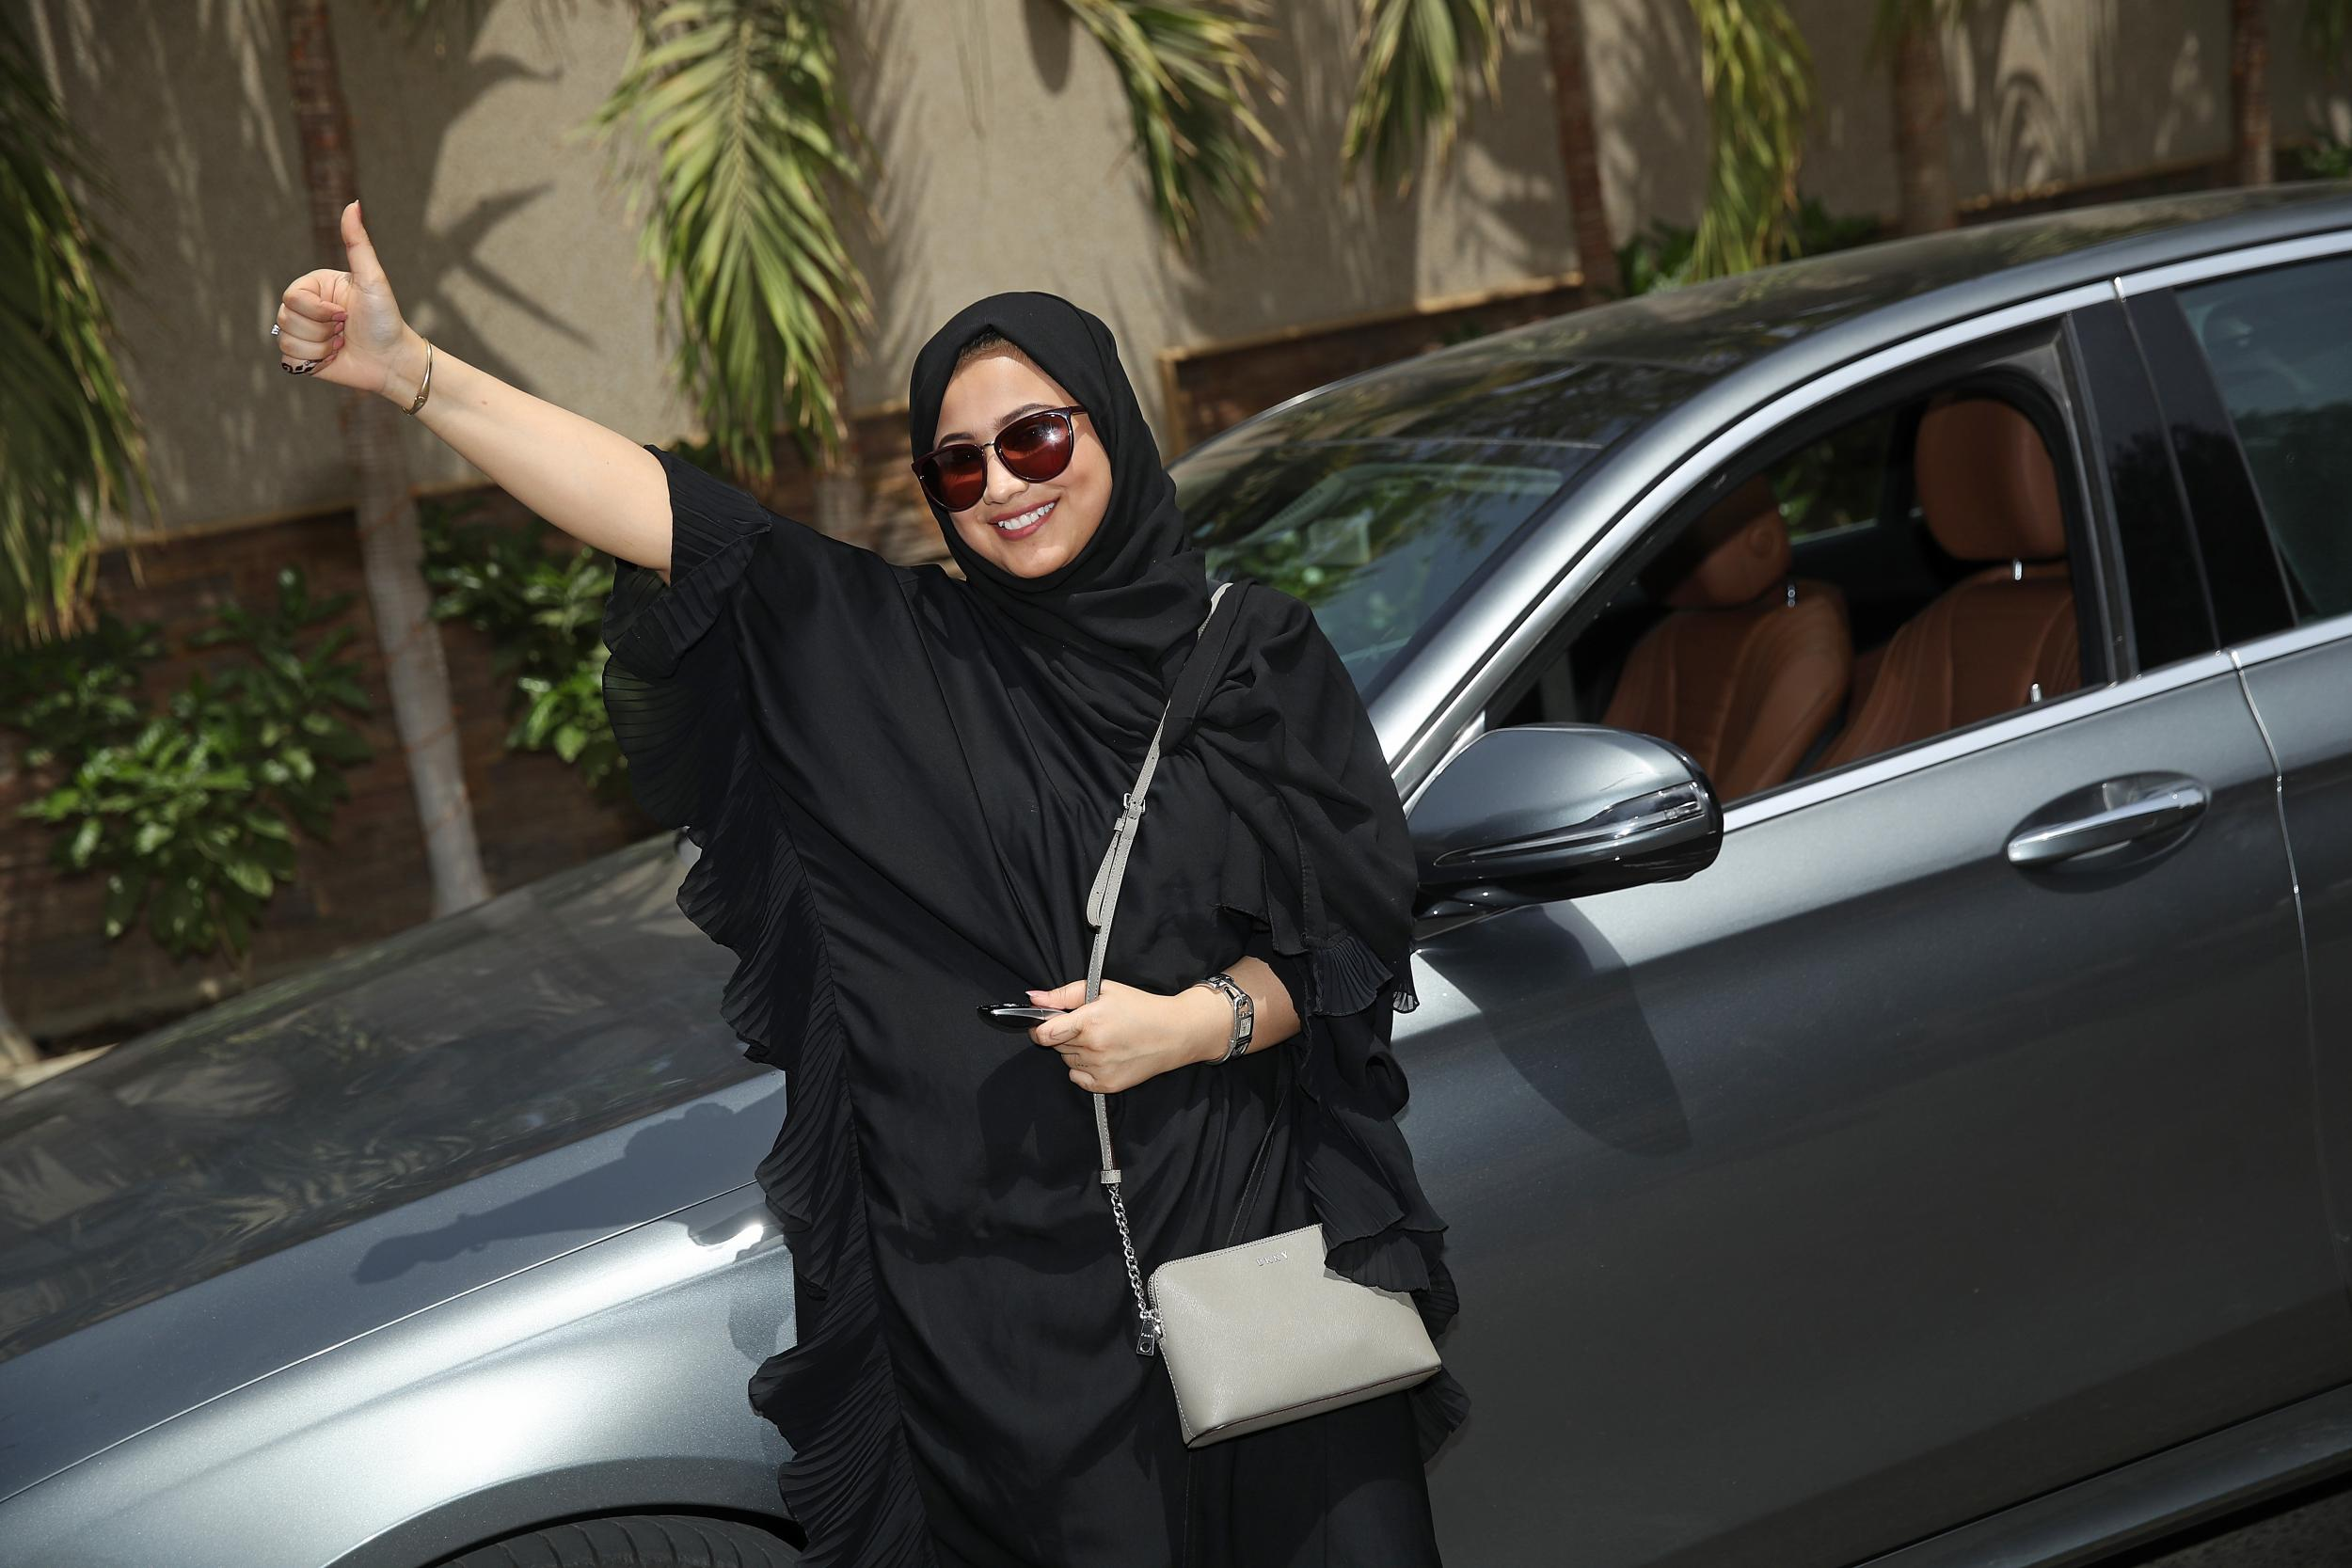 'Everything is an adventure now': Saudi women celebrate new driving freedoms as ban is lifted